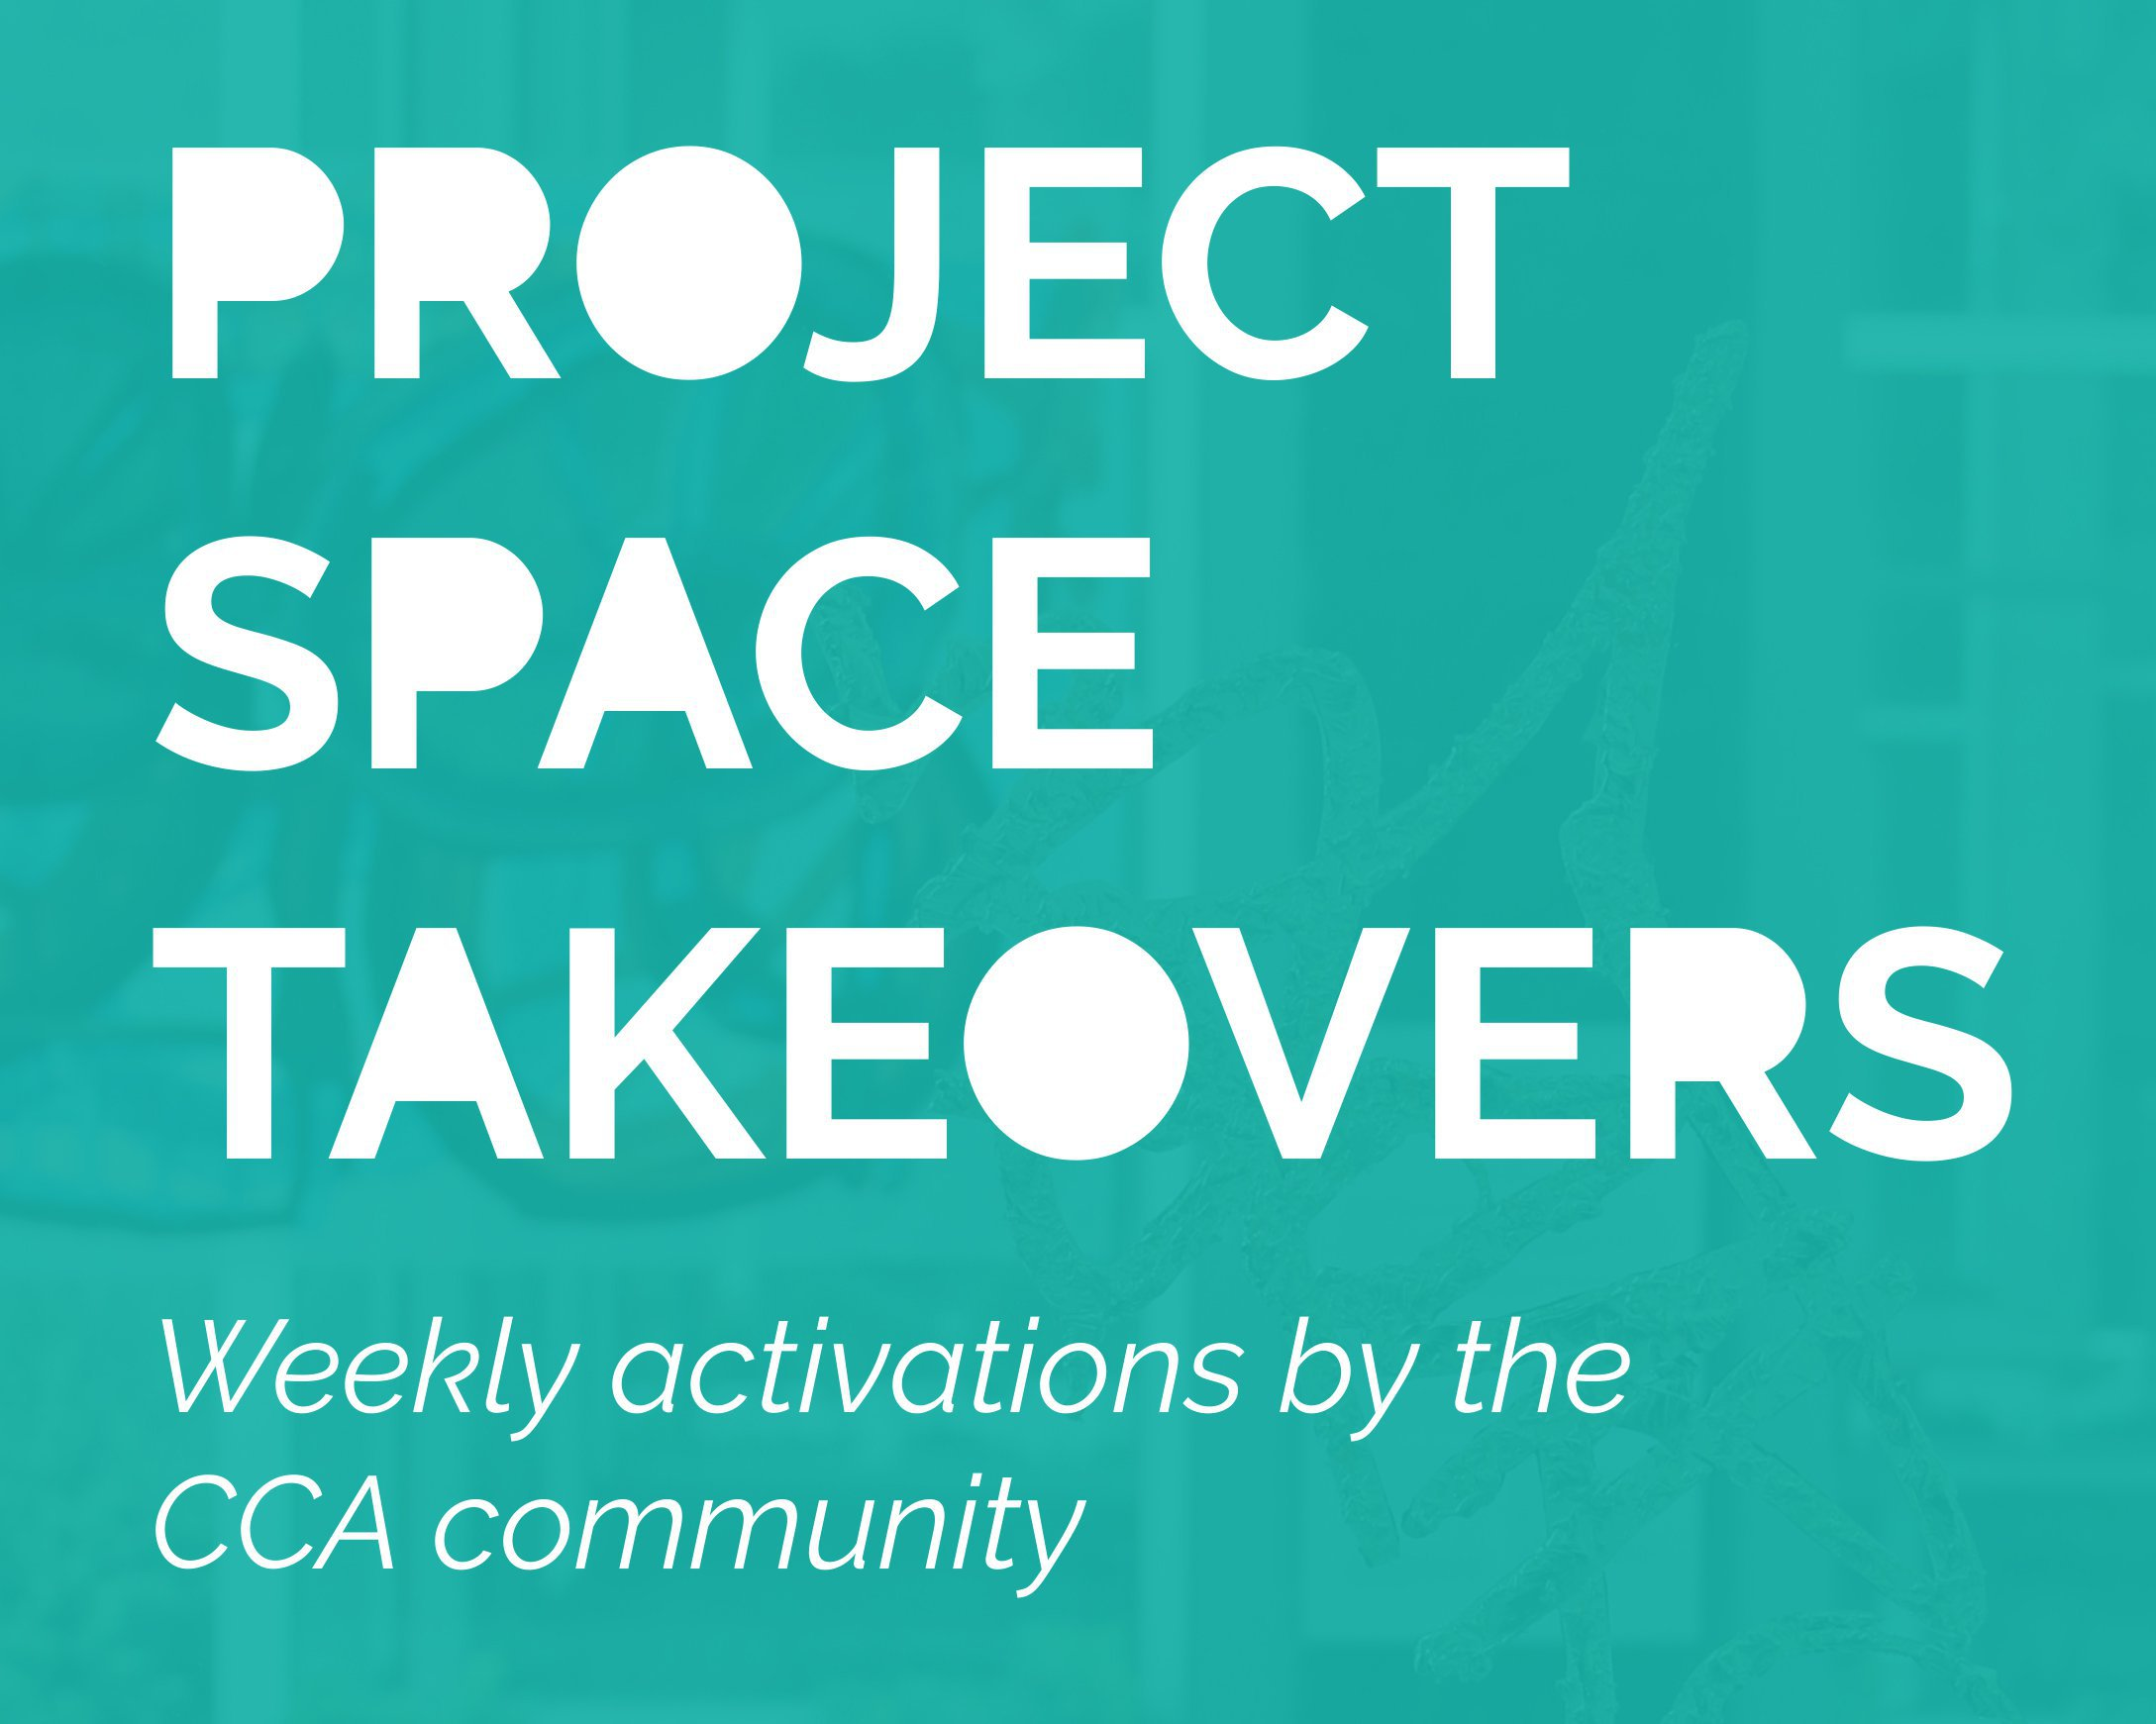 Project Space Takeover Thumbnail.jpg